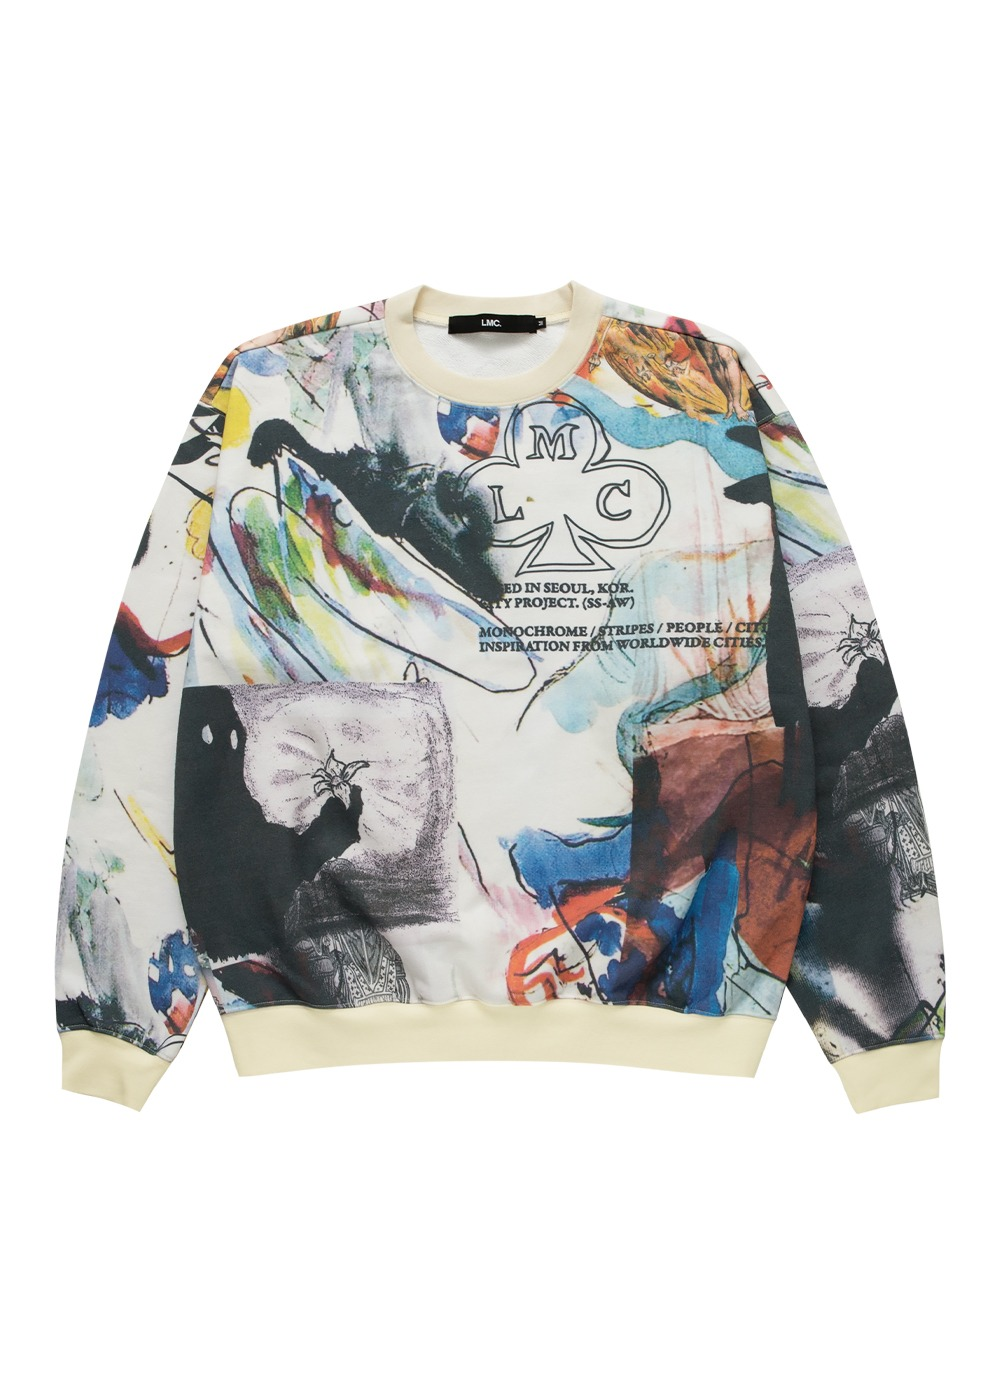 LMC ARTWORKS PAINTING SWEATSHIRTS multi